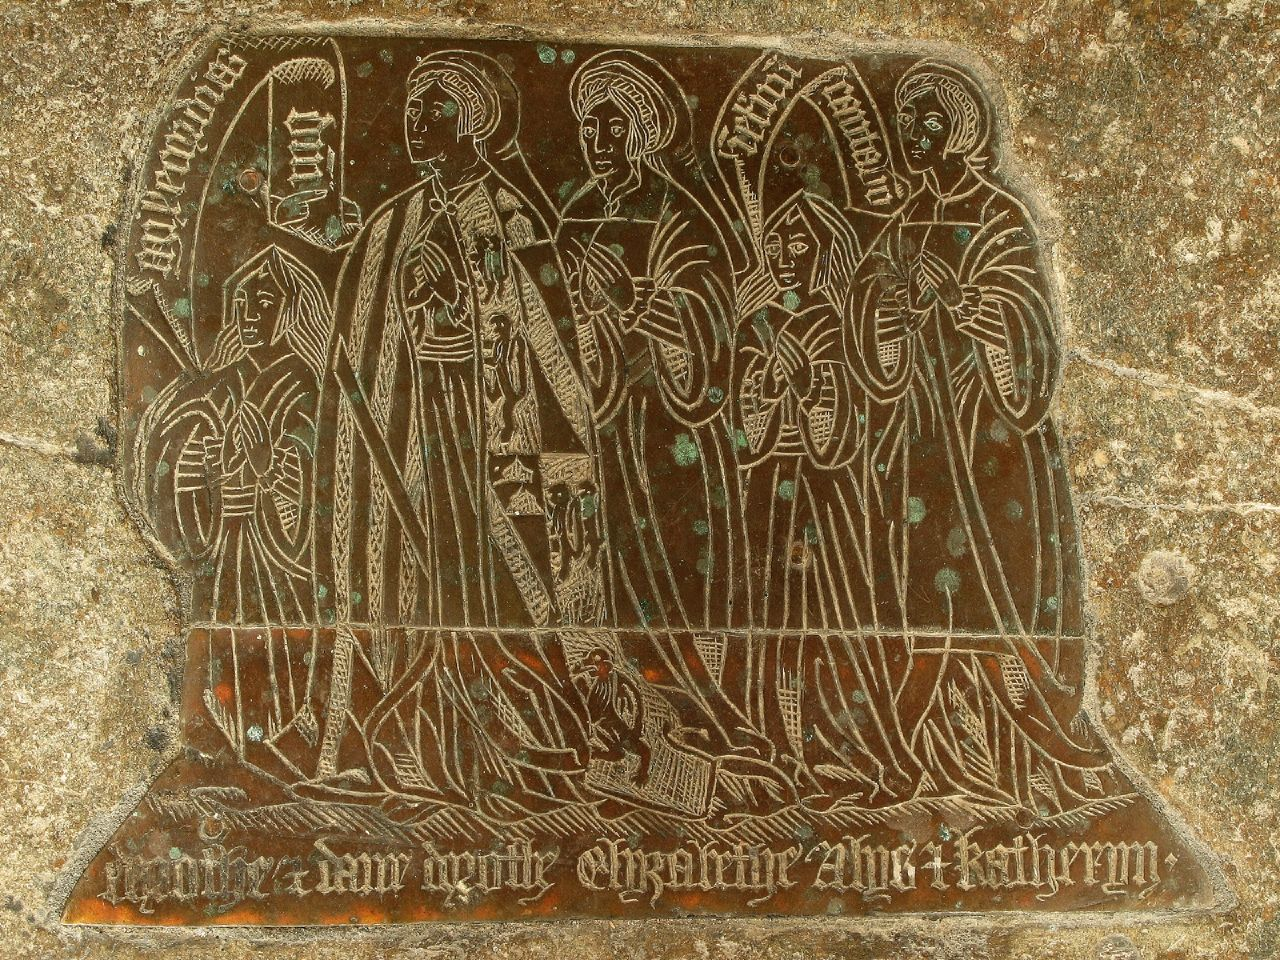 [[Monumental brass]] in chancel floor of Norbury Church to Anthony Fitzherbert and his wife. The foremost standing lady wears a mantle on which are shown the following arms: ''Gules, three lions rampant or'' (FitzHerbert of Tissington) quartering: ''Argent, a chief vairy gules and or overall a bend sable'' (FitzHerbert of Swynnerton)